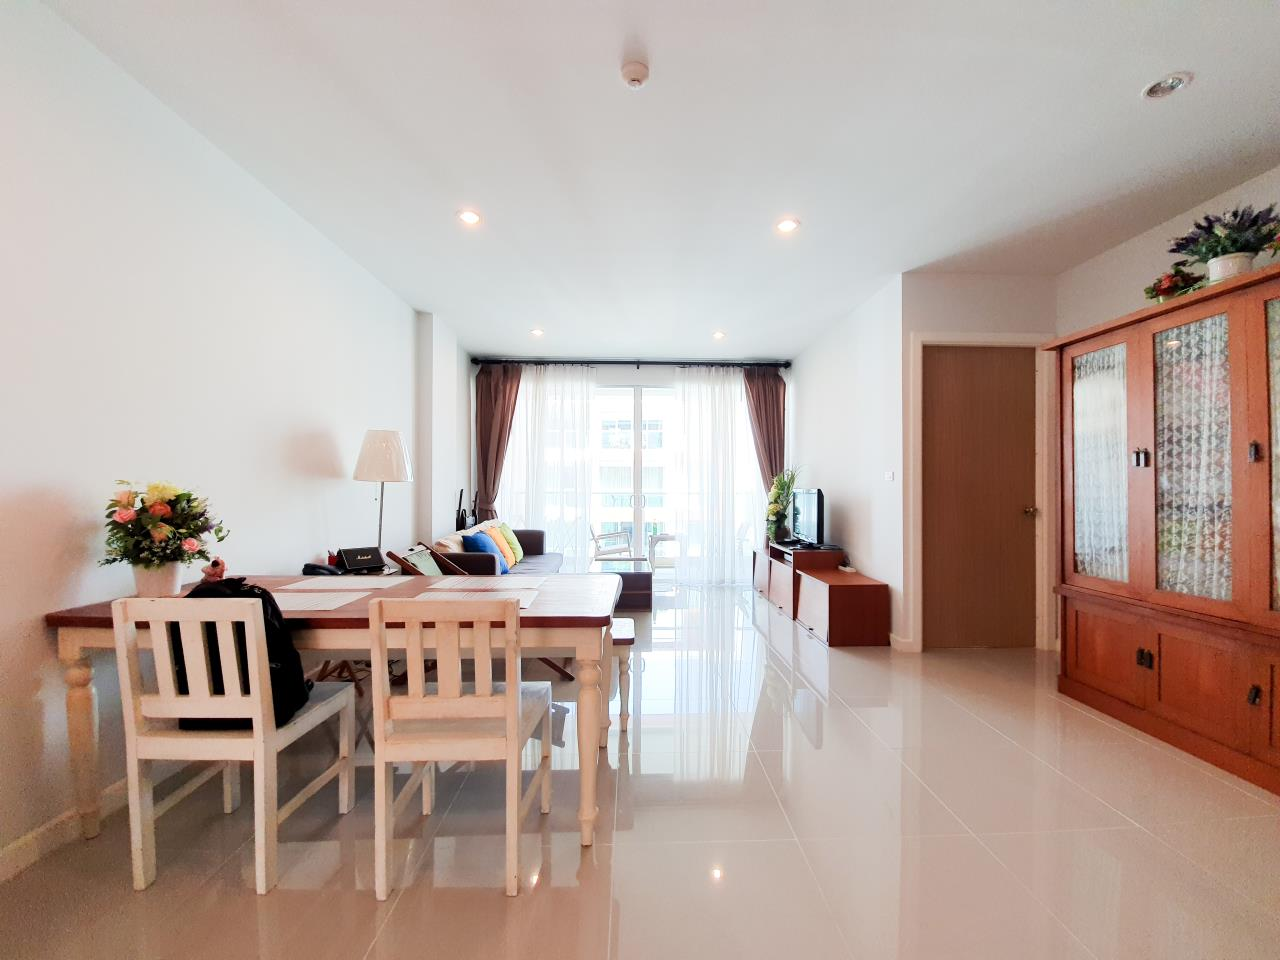 HOME - Real Estate Service Agency's The Breeze Hua Hin / 2 Beds (FOR RENT), เดอะ บรีซ หัวหิน / 2 ห้องนอน (ให้เช่า) T008 6